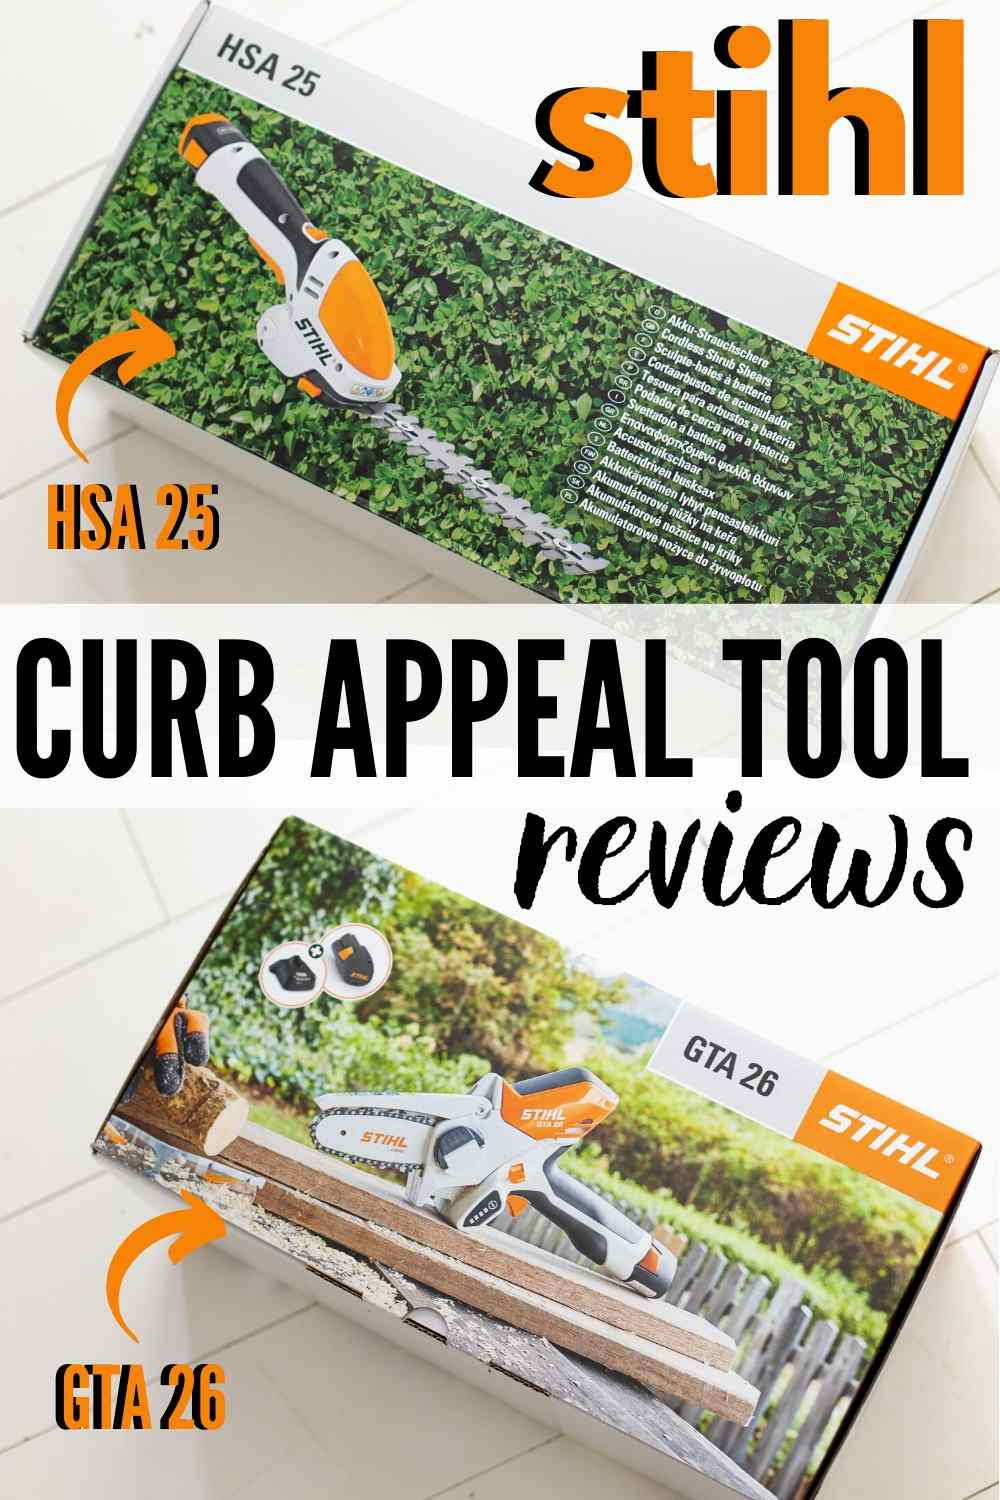 "STIHL GTA 26 and HSA 25 in boxes on white floor - text ""stihl curb appeal tool reviews hsa 25 and gta 26"""